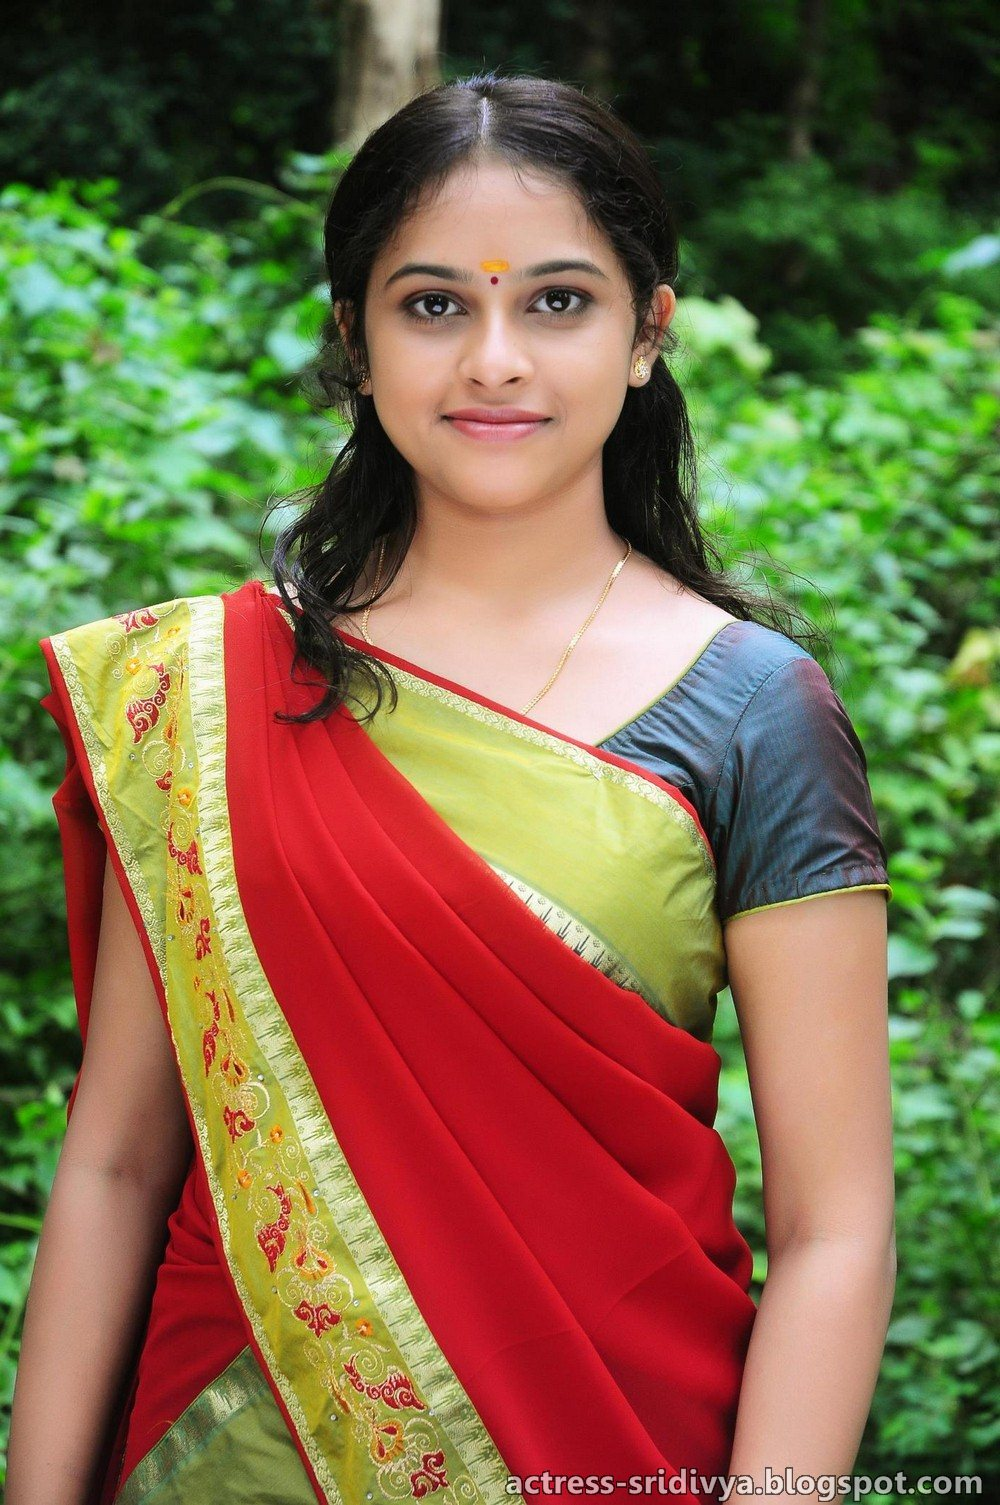 Actress Sri Divya Photos: Sri Divya Official: Sri Divya's First Movie Manasara